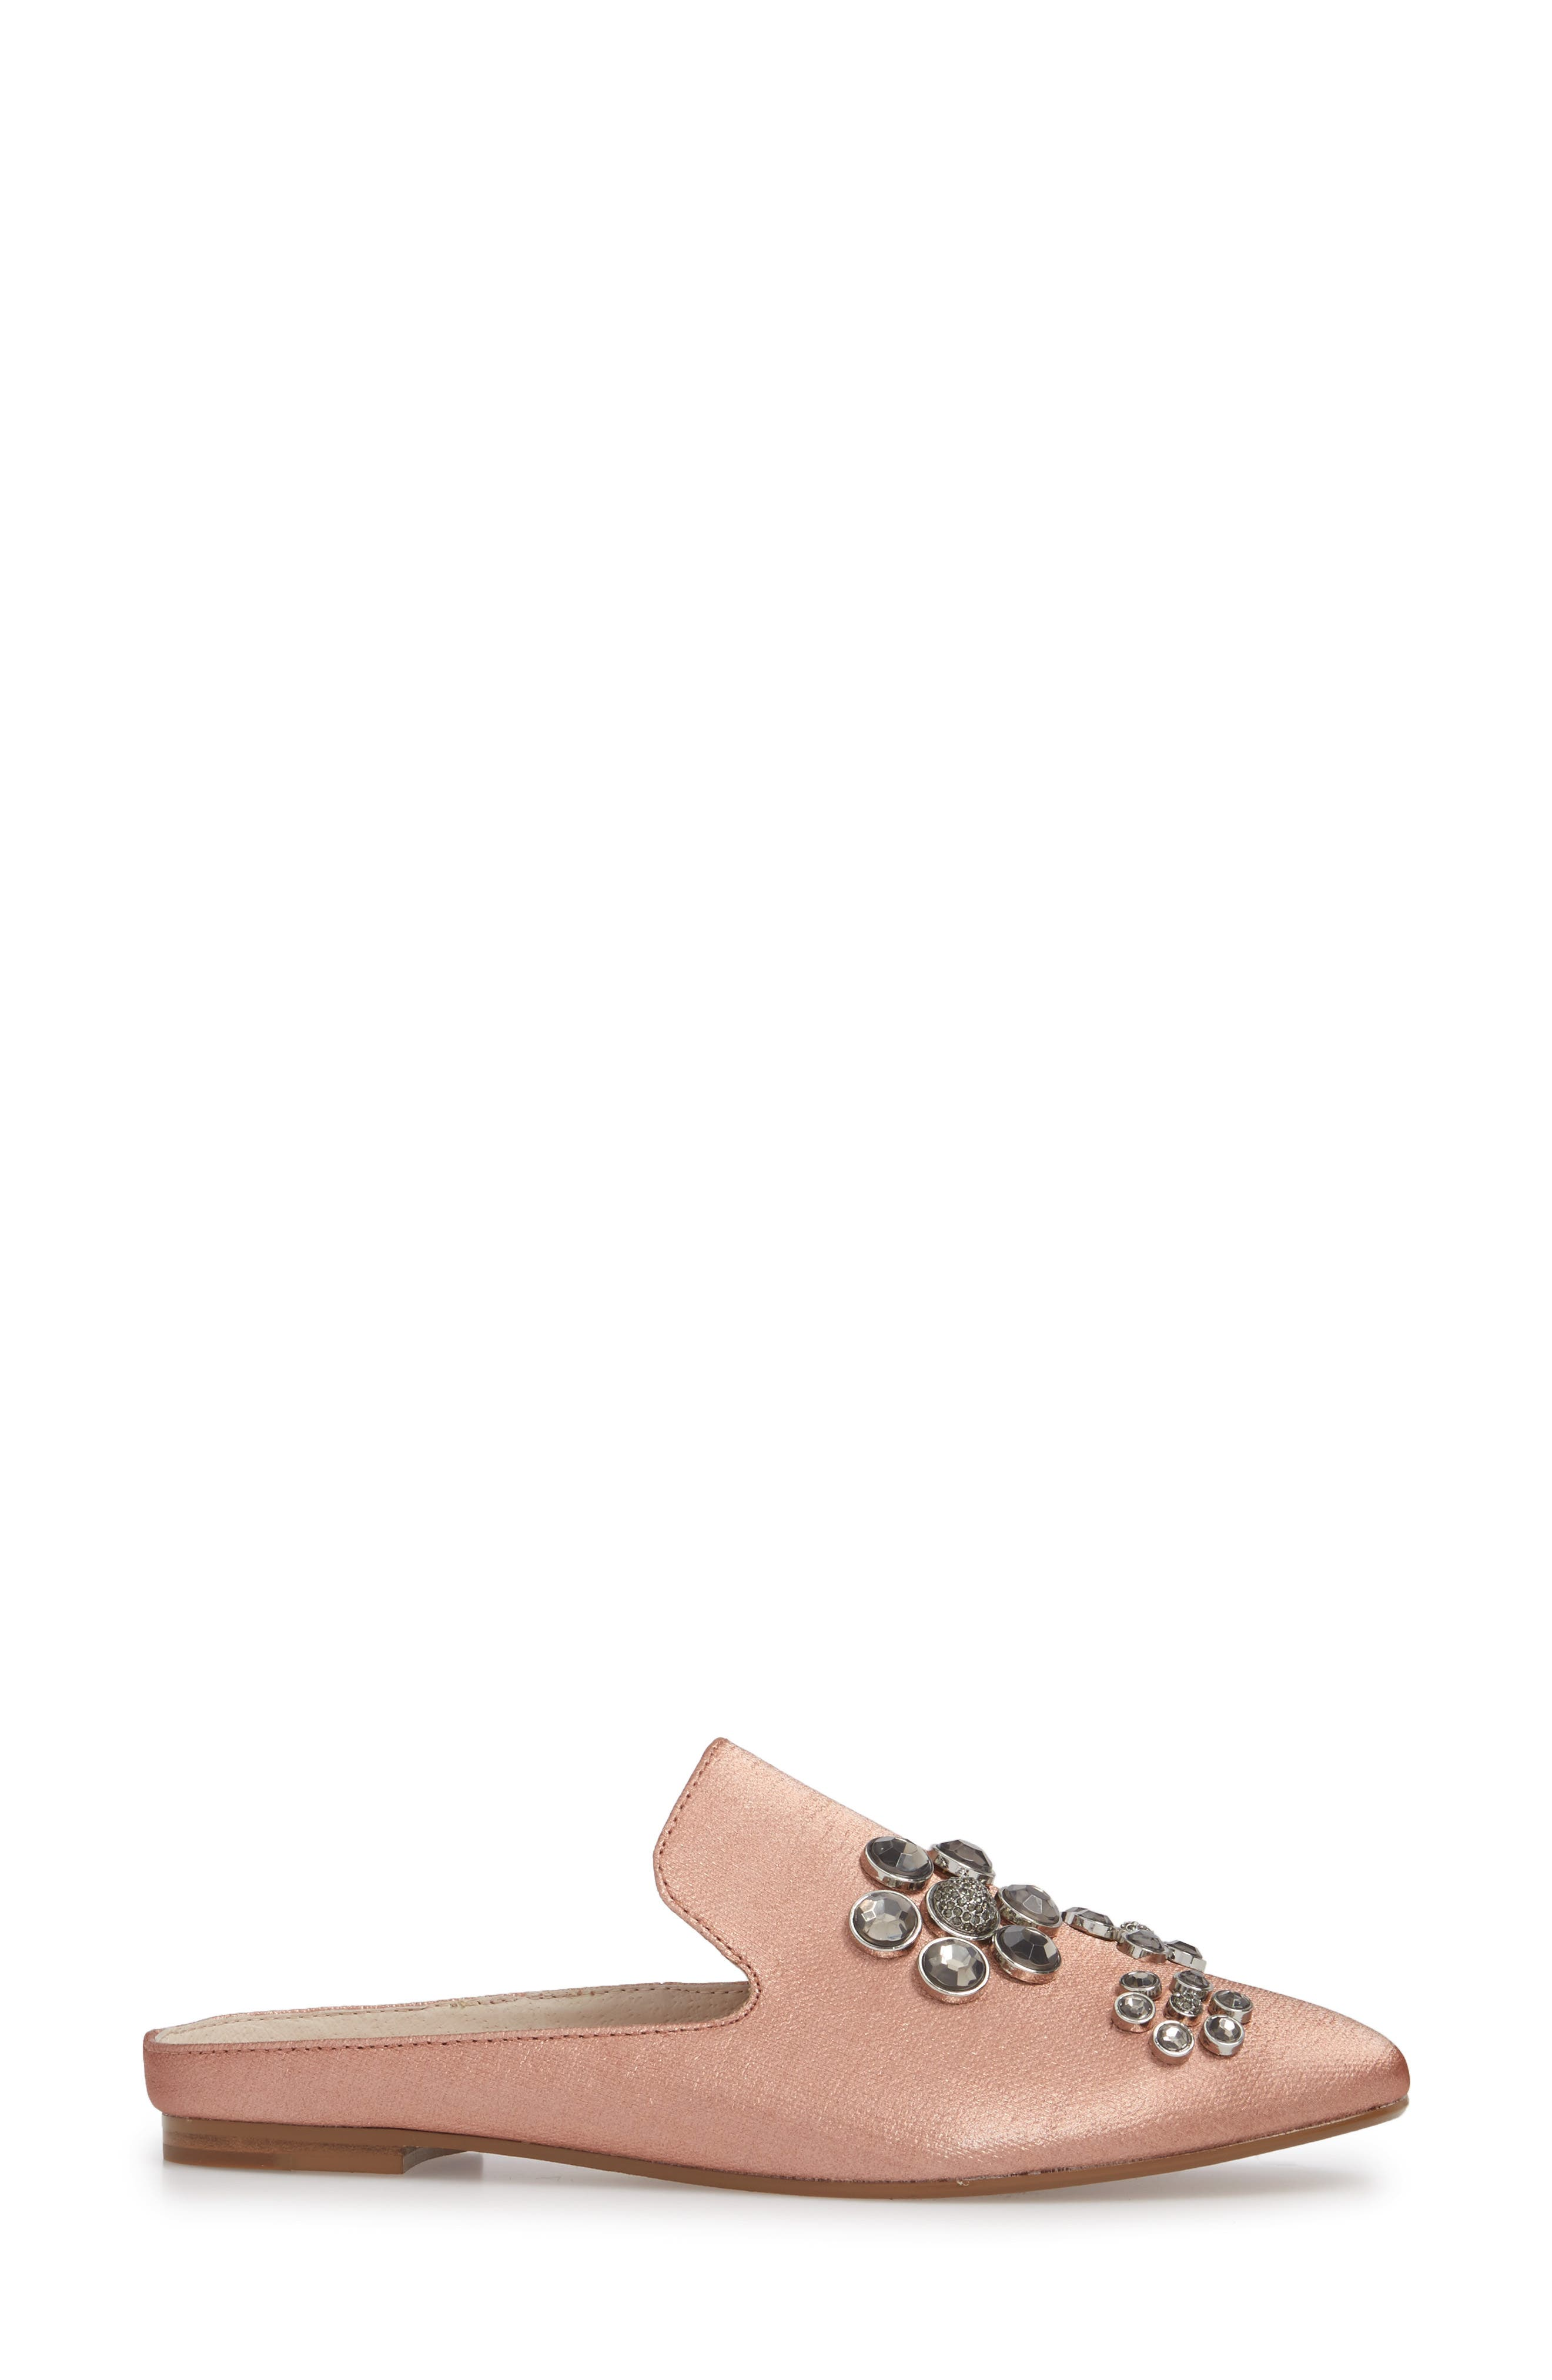 Felix II Crystal Flower Loafer Mule,                             Alternate thumbnail 12, color,